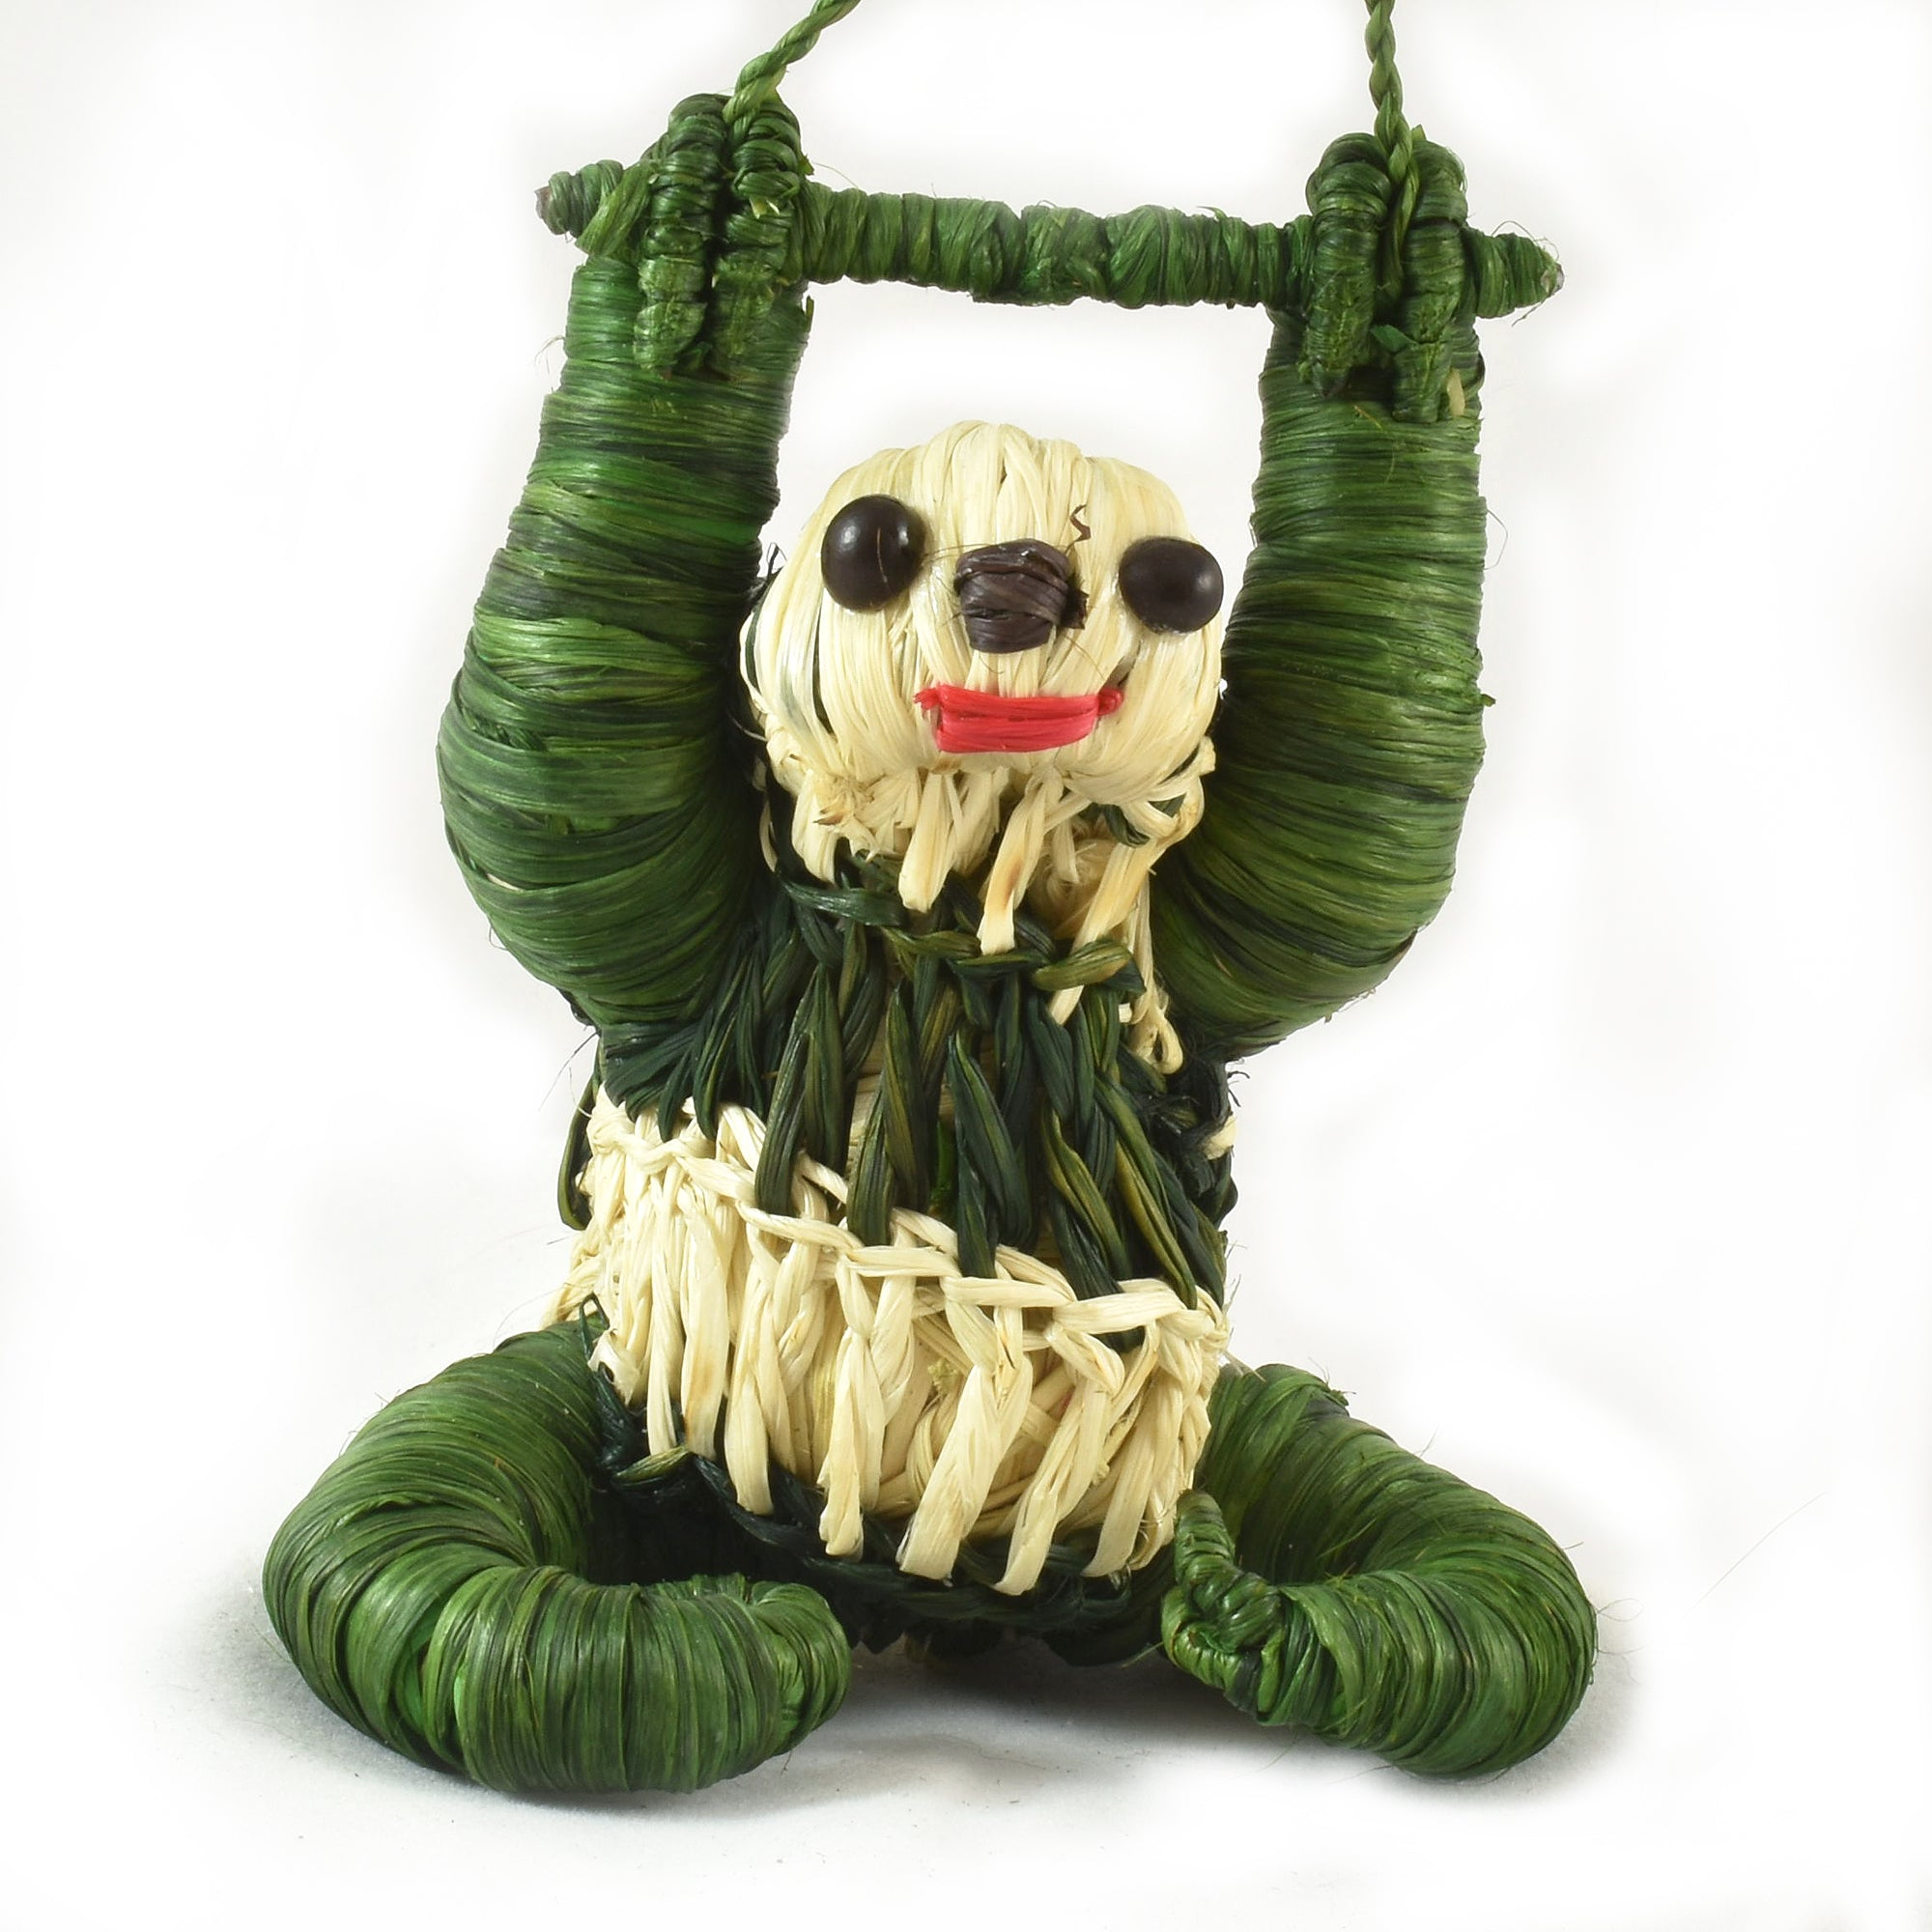 FAIR -TRADE CHRISTMAS TREE ORNAMENT - SLOTH - WOVEN BY PERUVIAN AMAZON ARTISAN